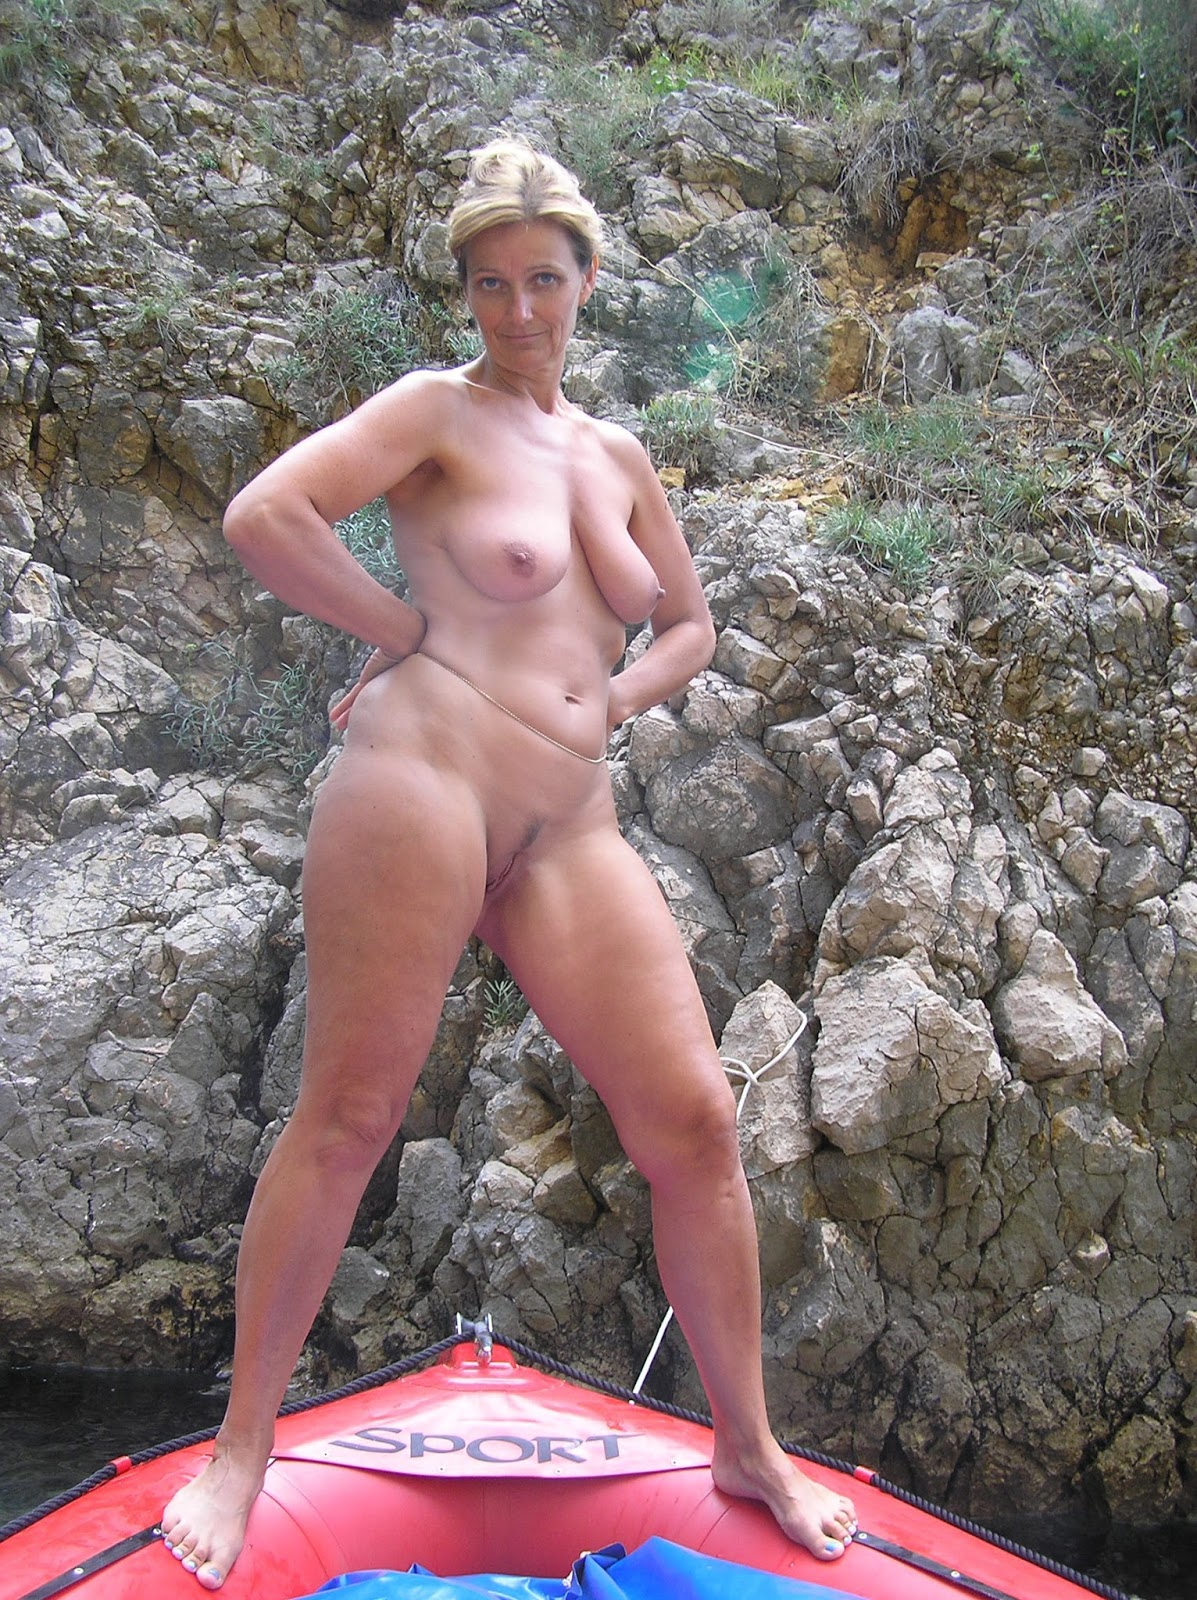 Mature Nude Women On Tumblr